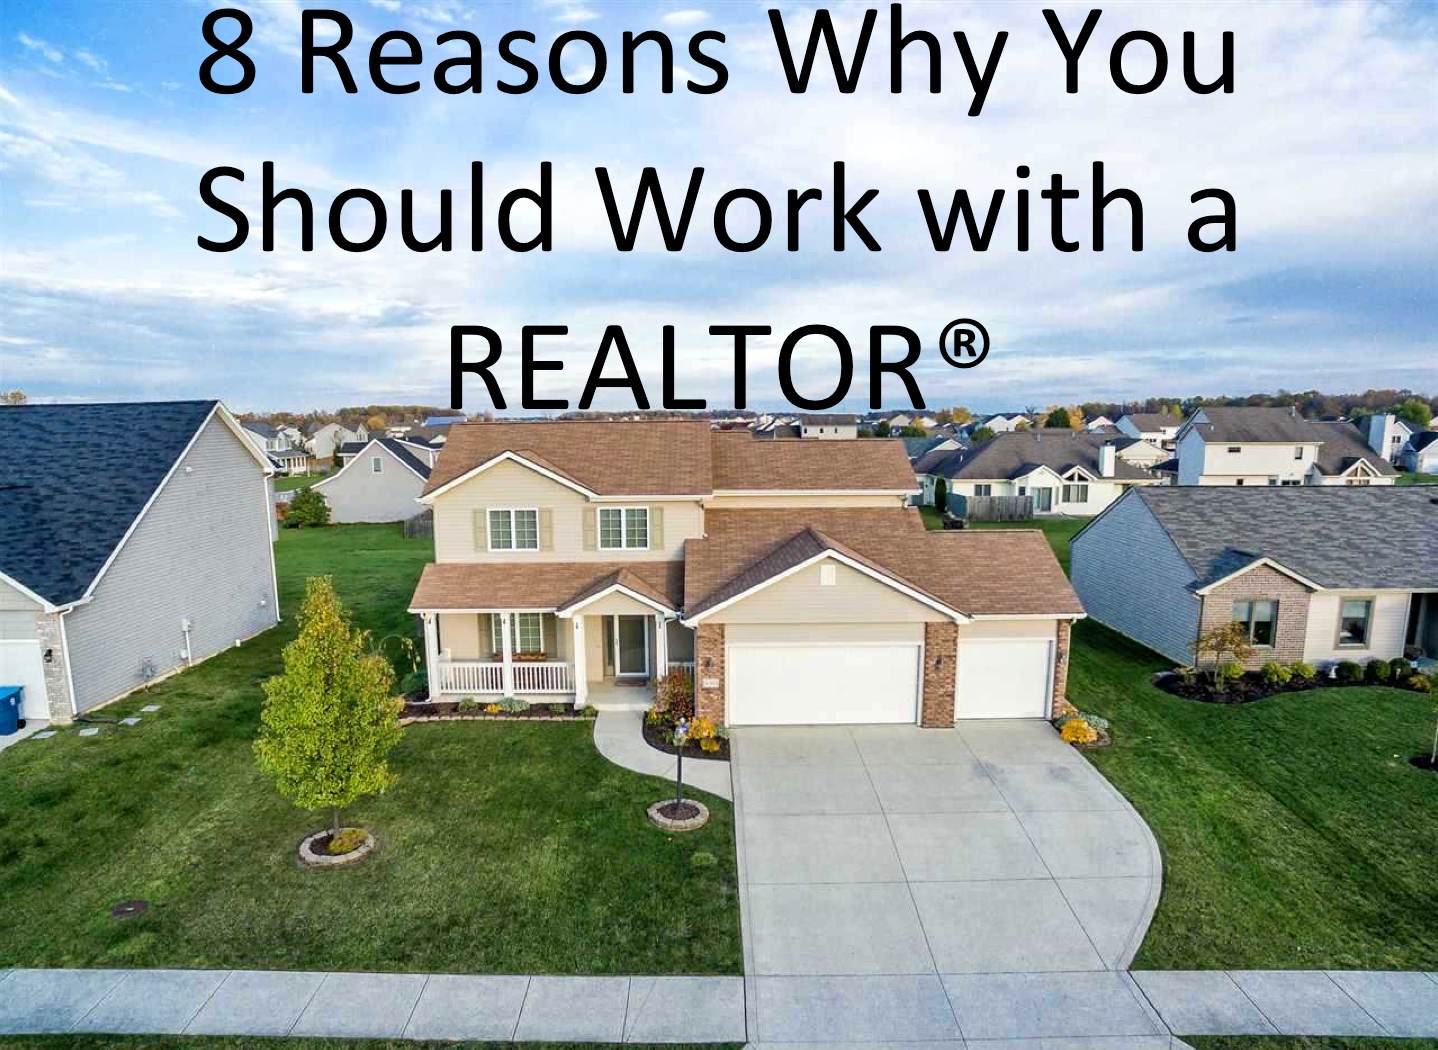 8 Reason Why You Should Work with a REALTOR®